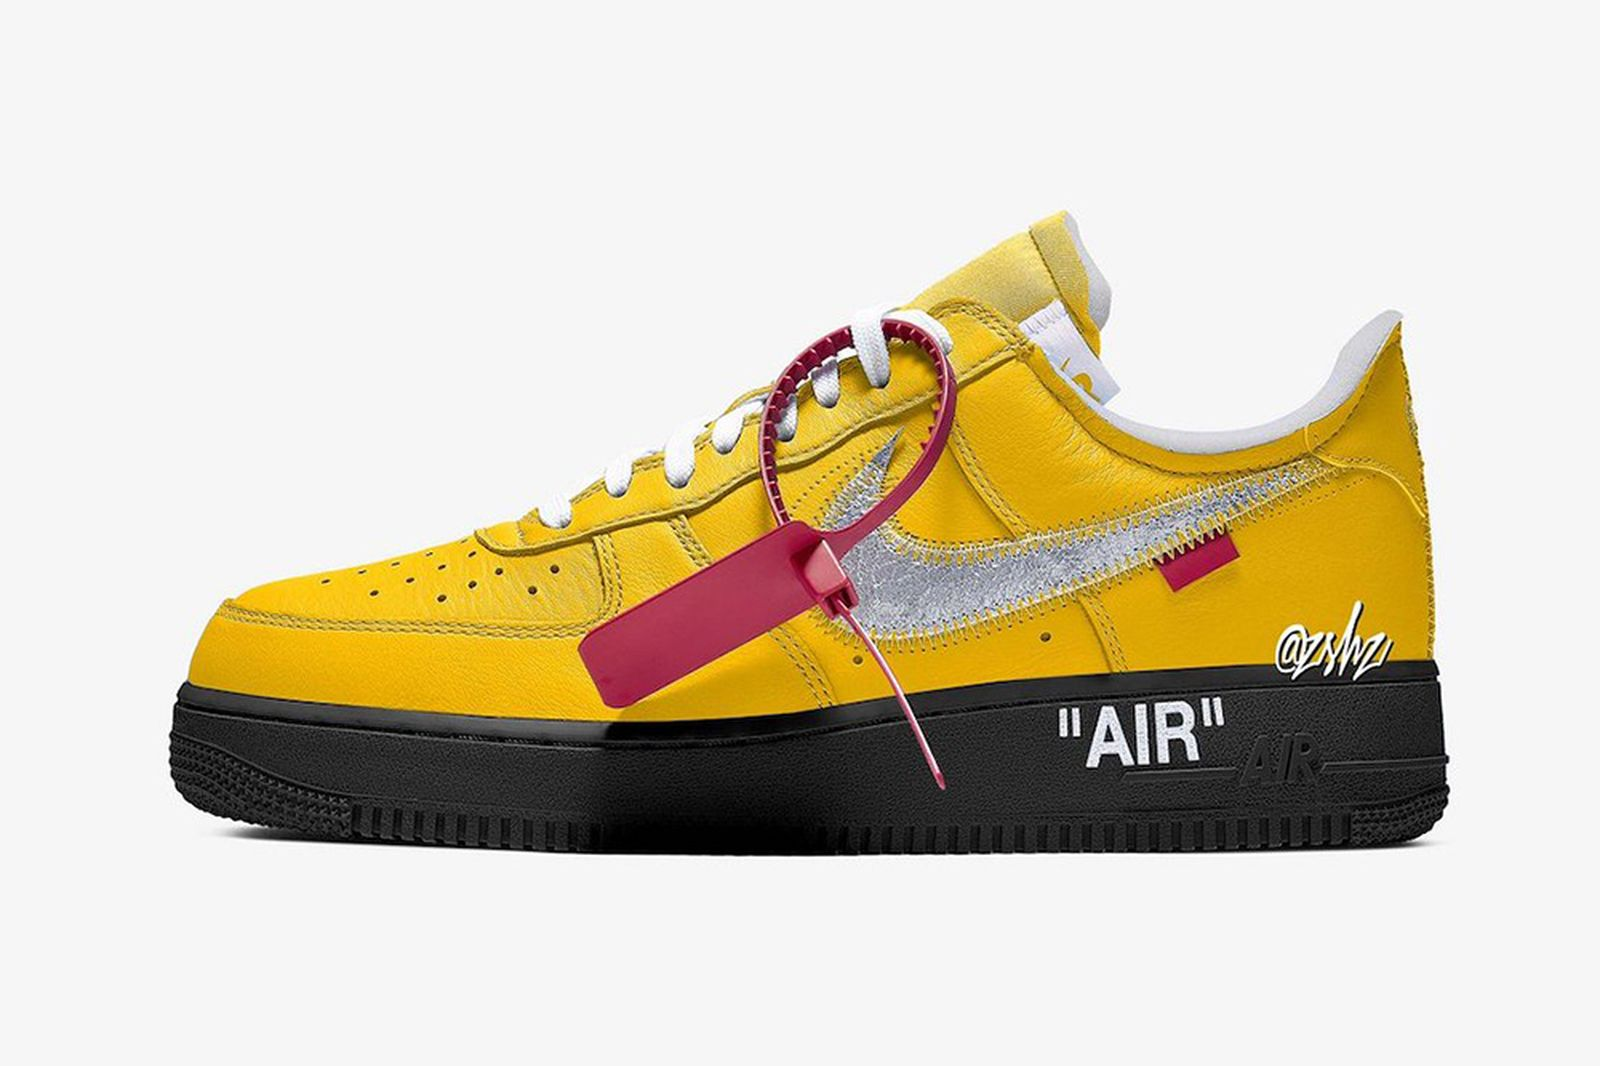 off-white-nike-new-sneakers-2021-03